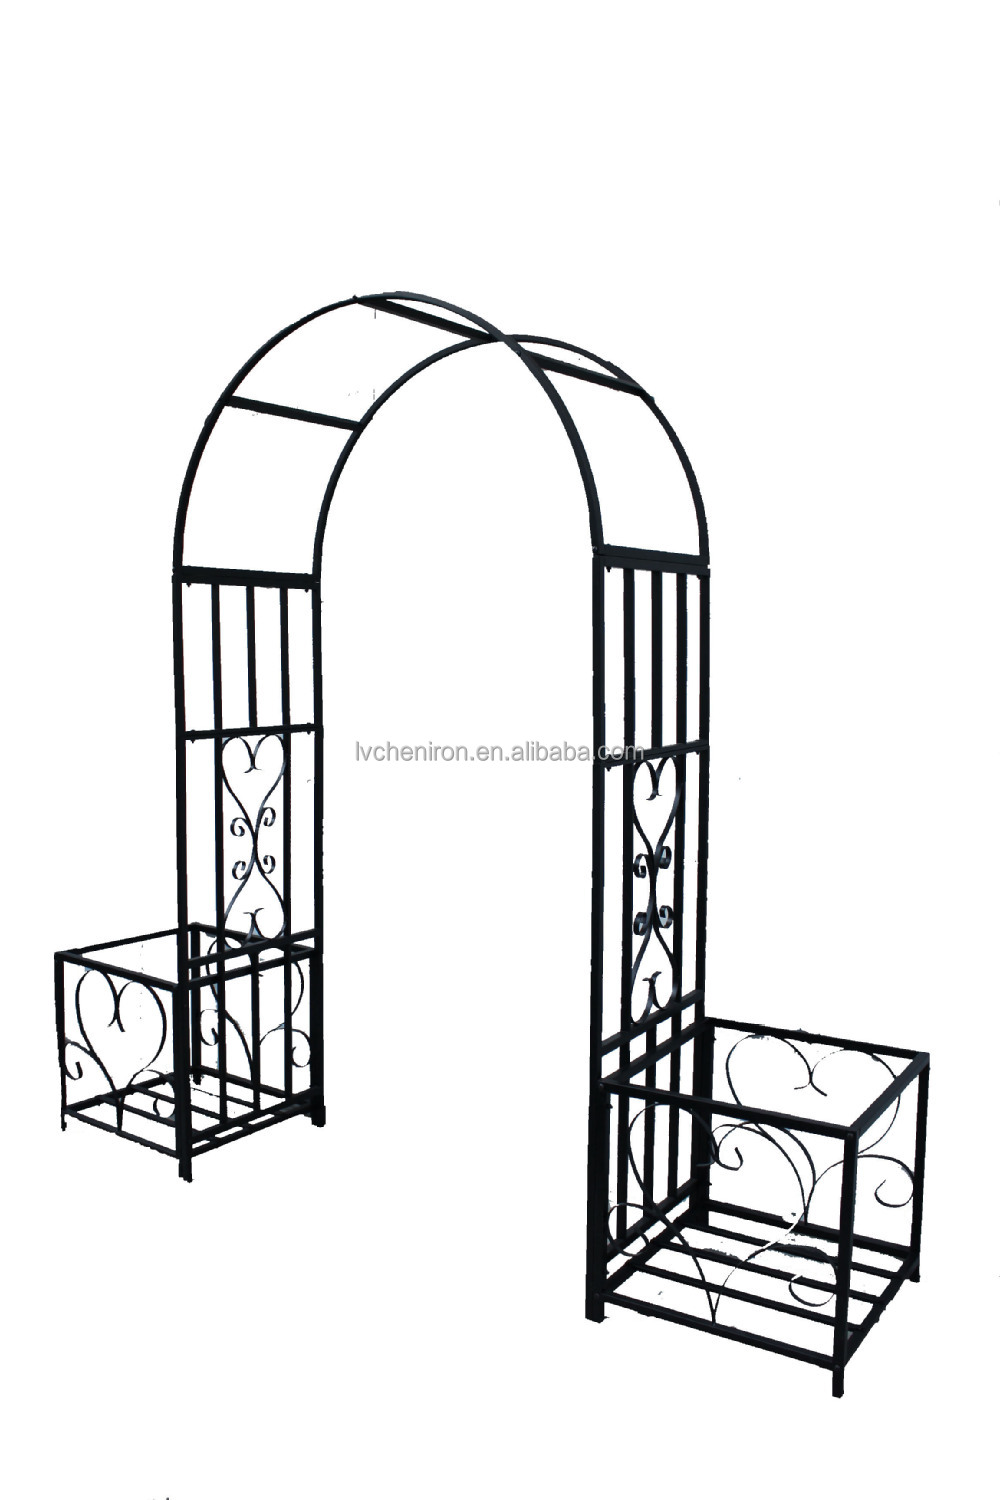 Metal Garden Arch With GateSquare Steel TubePowder Coated Buy